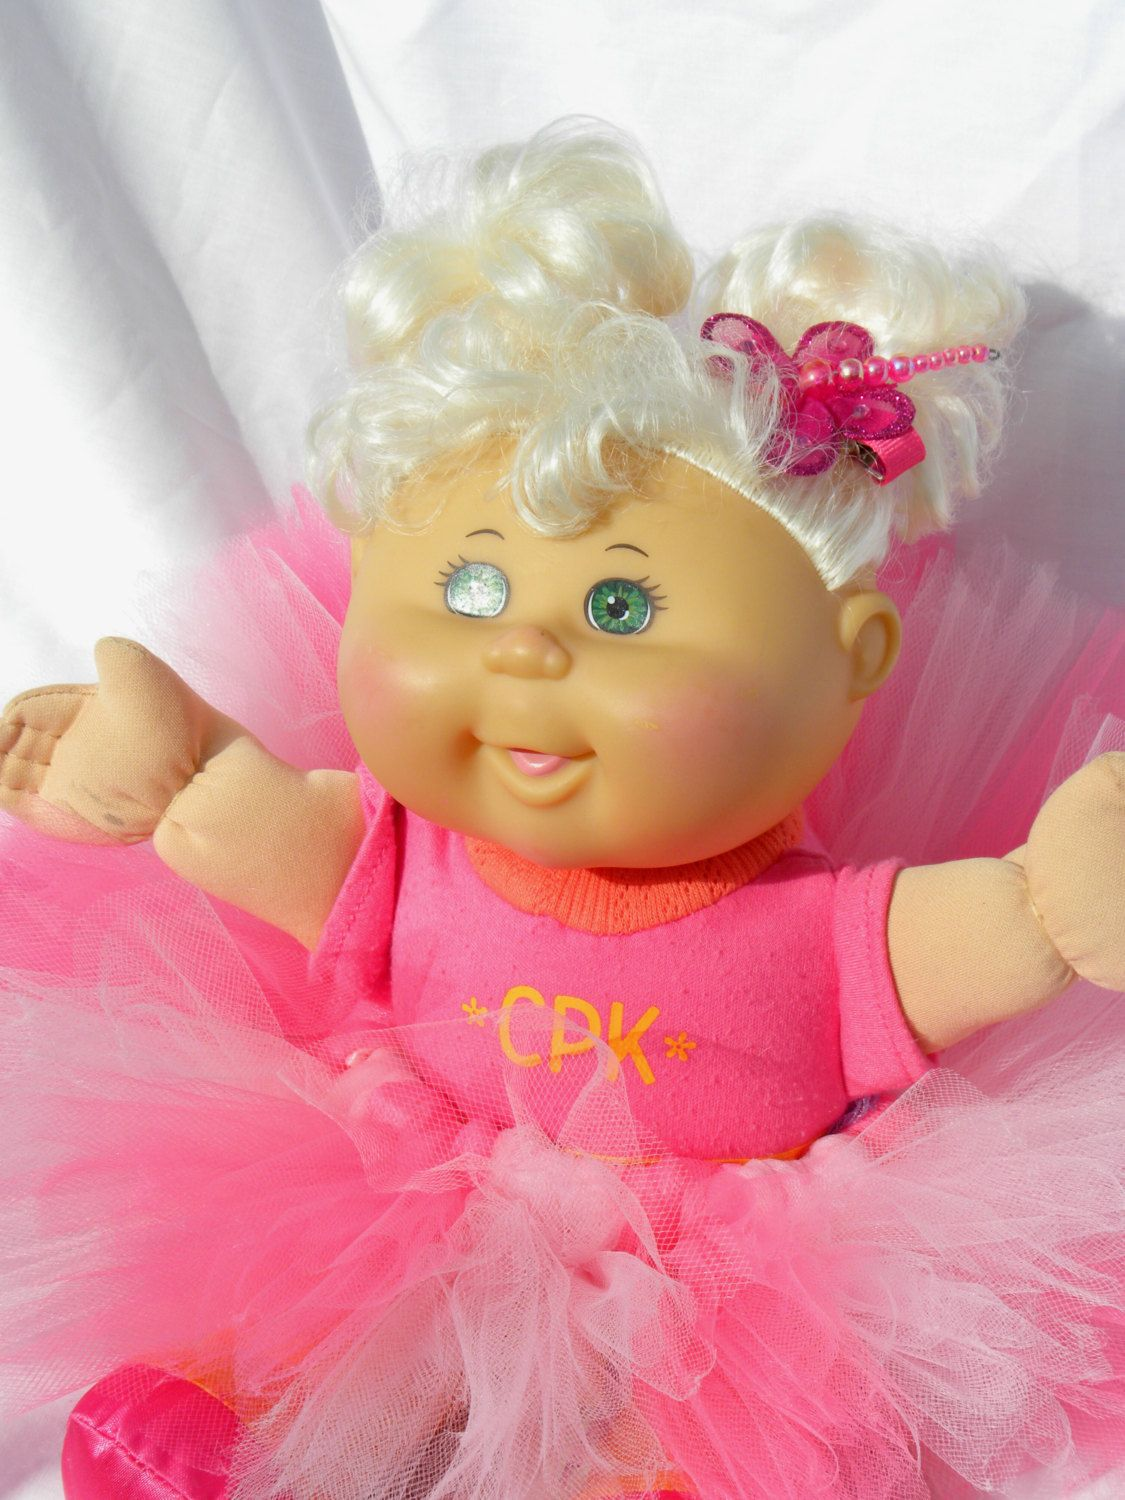 Bubblegum baby pink cabbage patch doll tutu perfect valentines perfect valentines day or easter present at 2 yo my little girl is really getting into her baby dolls negle Images